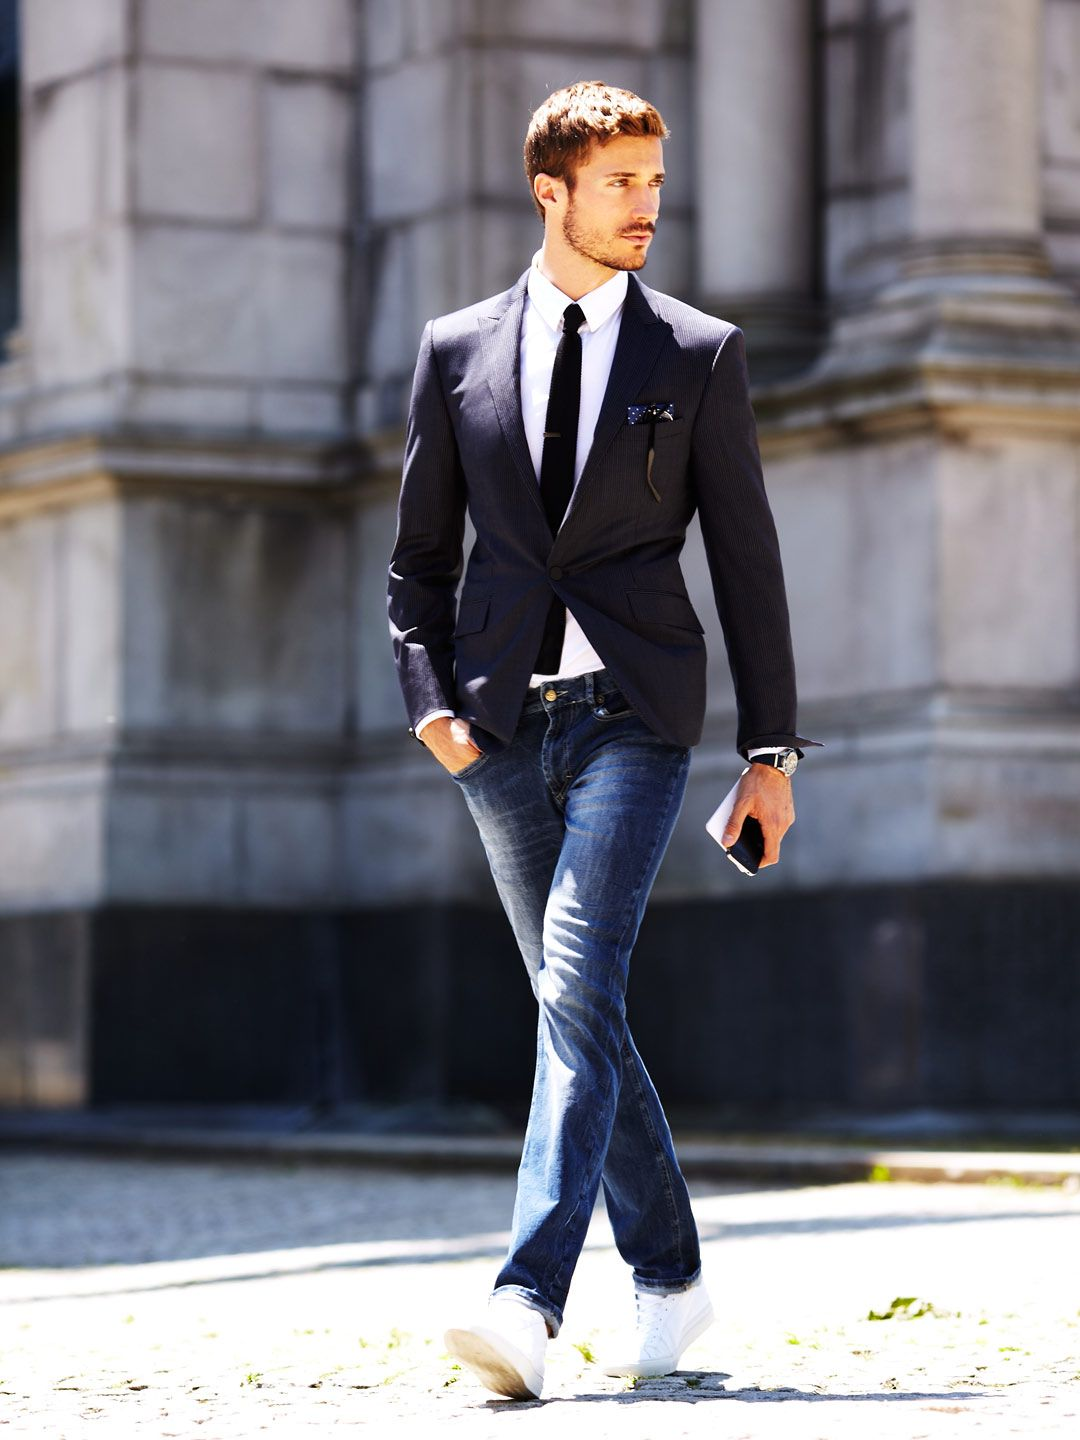 14 Splendid Wedding Outfits For Guys In 2020 Pouted Com Business Casual Attire For Men Smart Casual Men Jeans Mens Outfits